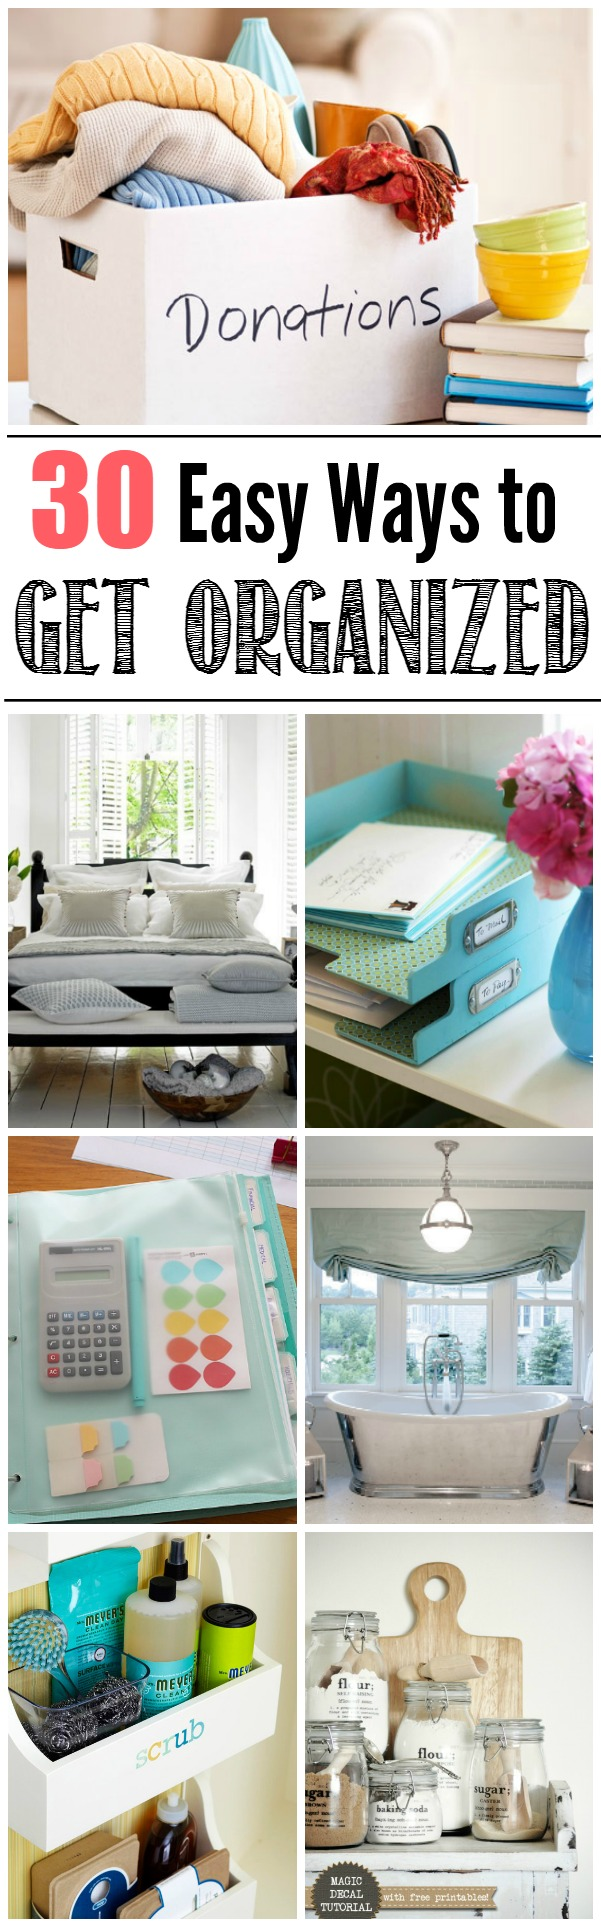 Lots of tips and ideas to help you organize your life.  See what works for you!